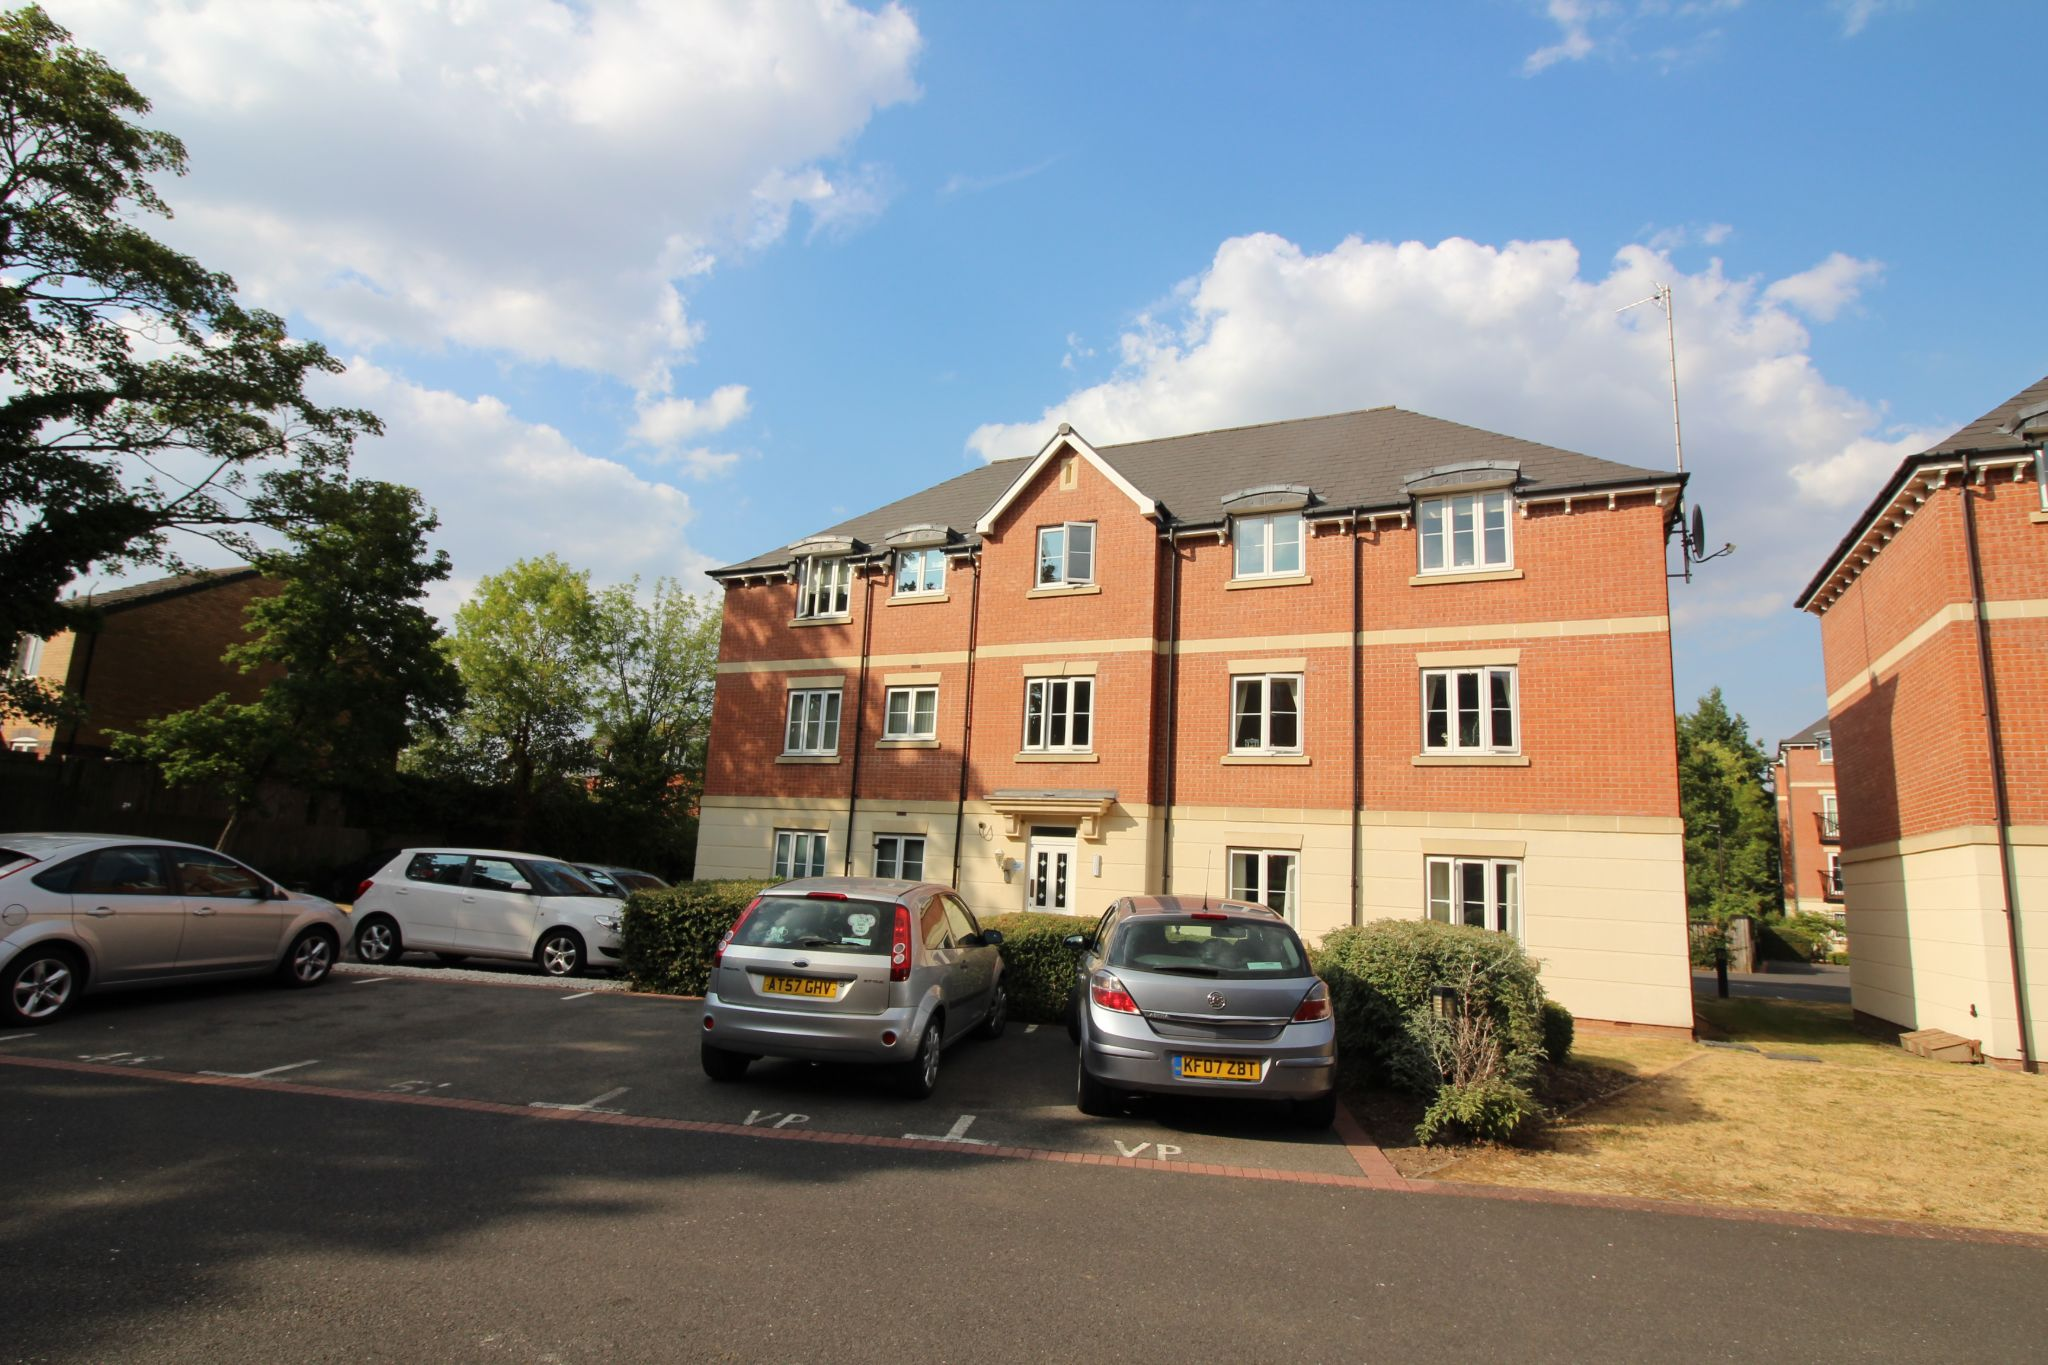 2 bedroom apartment flat/apartment For Sale in Solihull - Photograph 1.